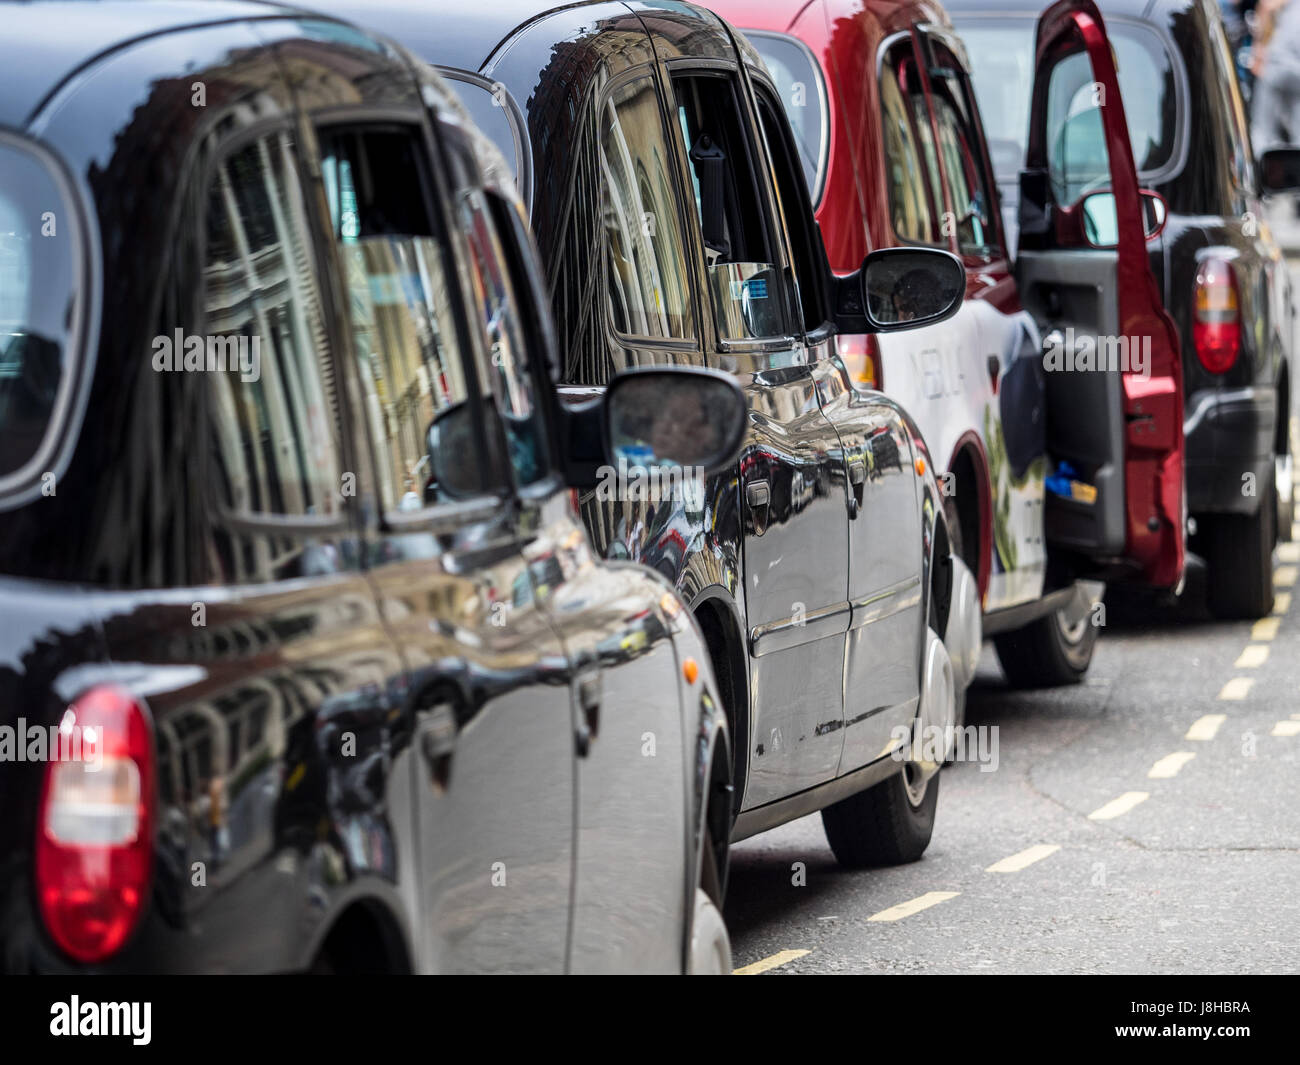 London Taxis Black Cabs queue for passengers at a Central London Railway Station Stock Photo